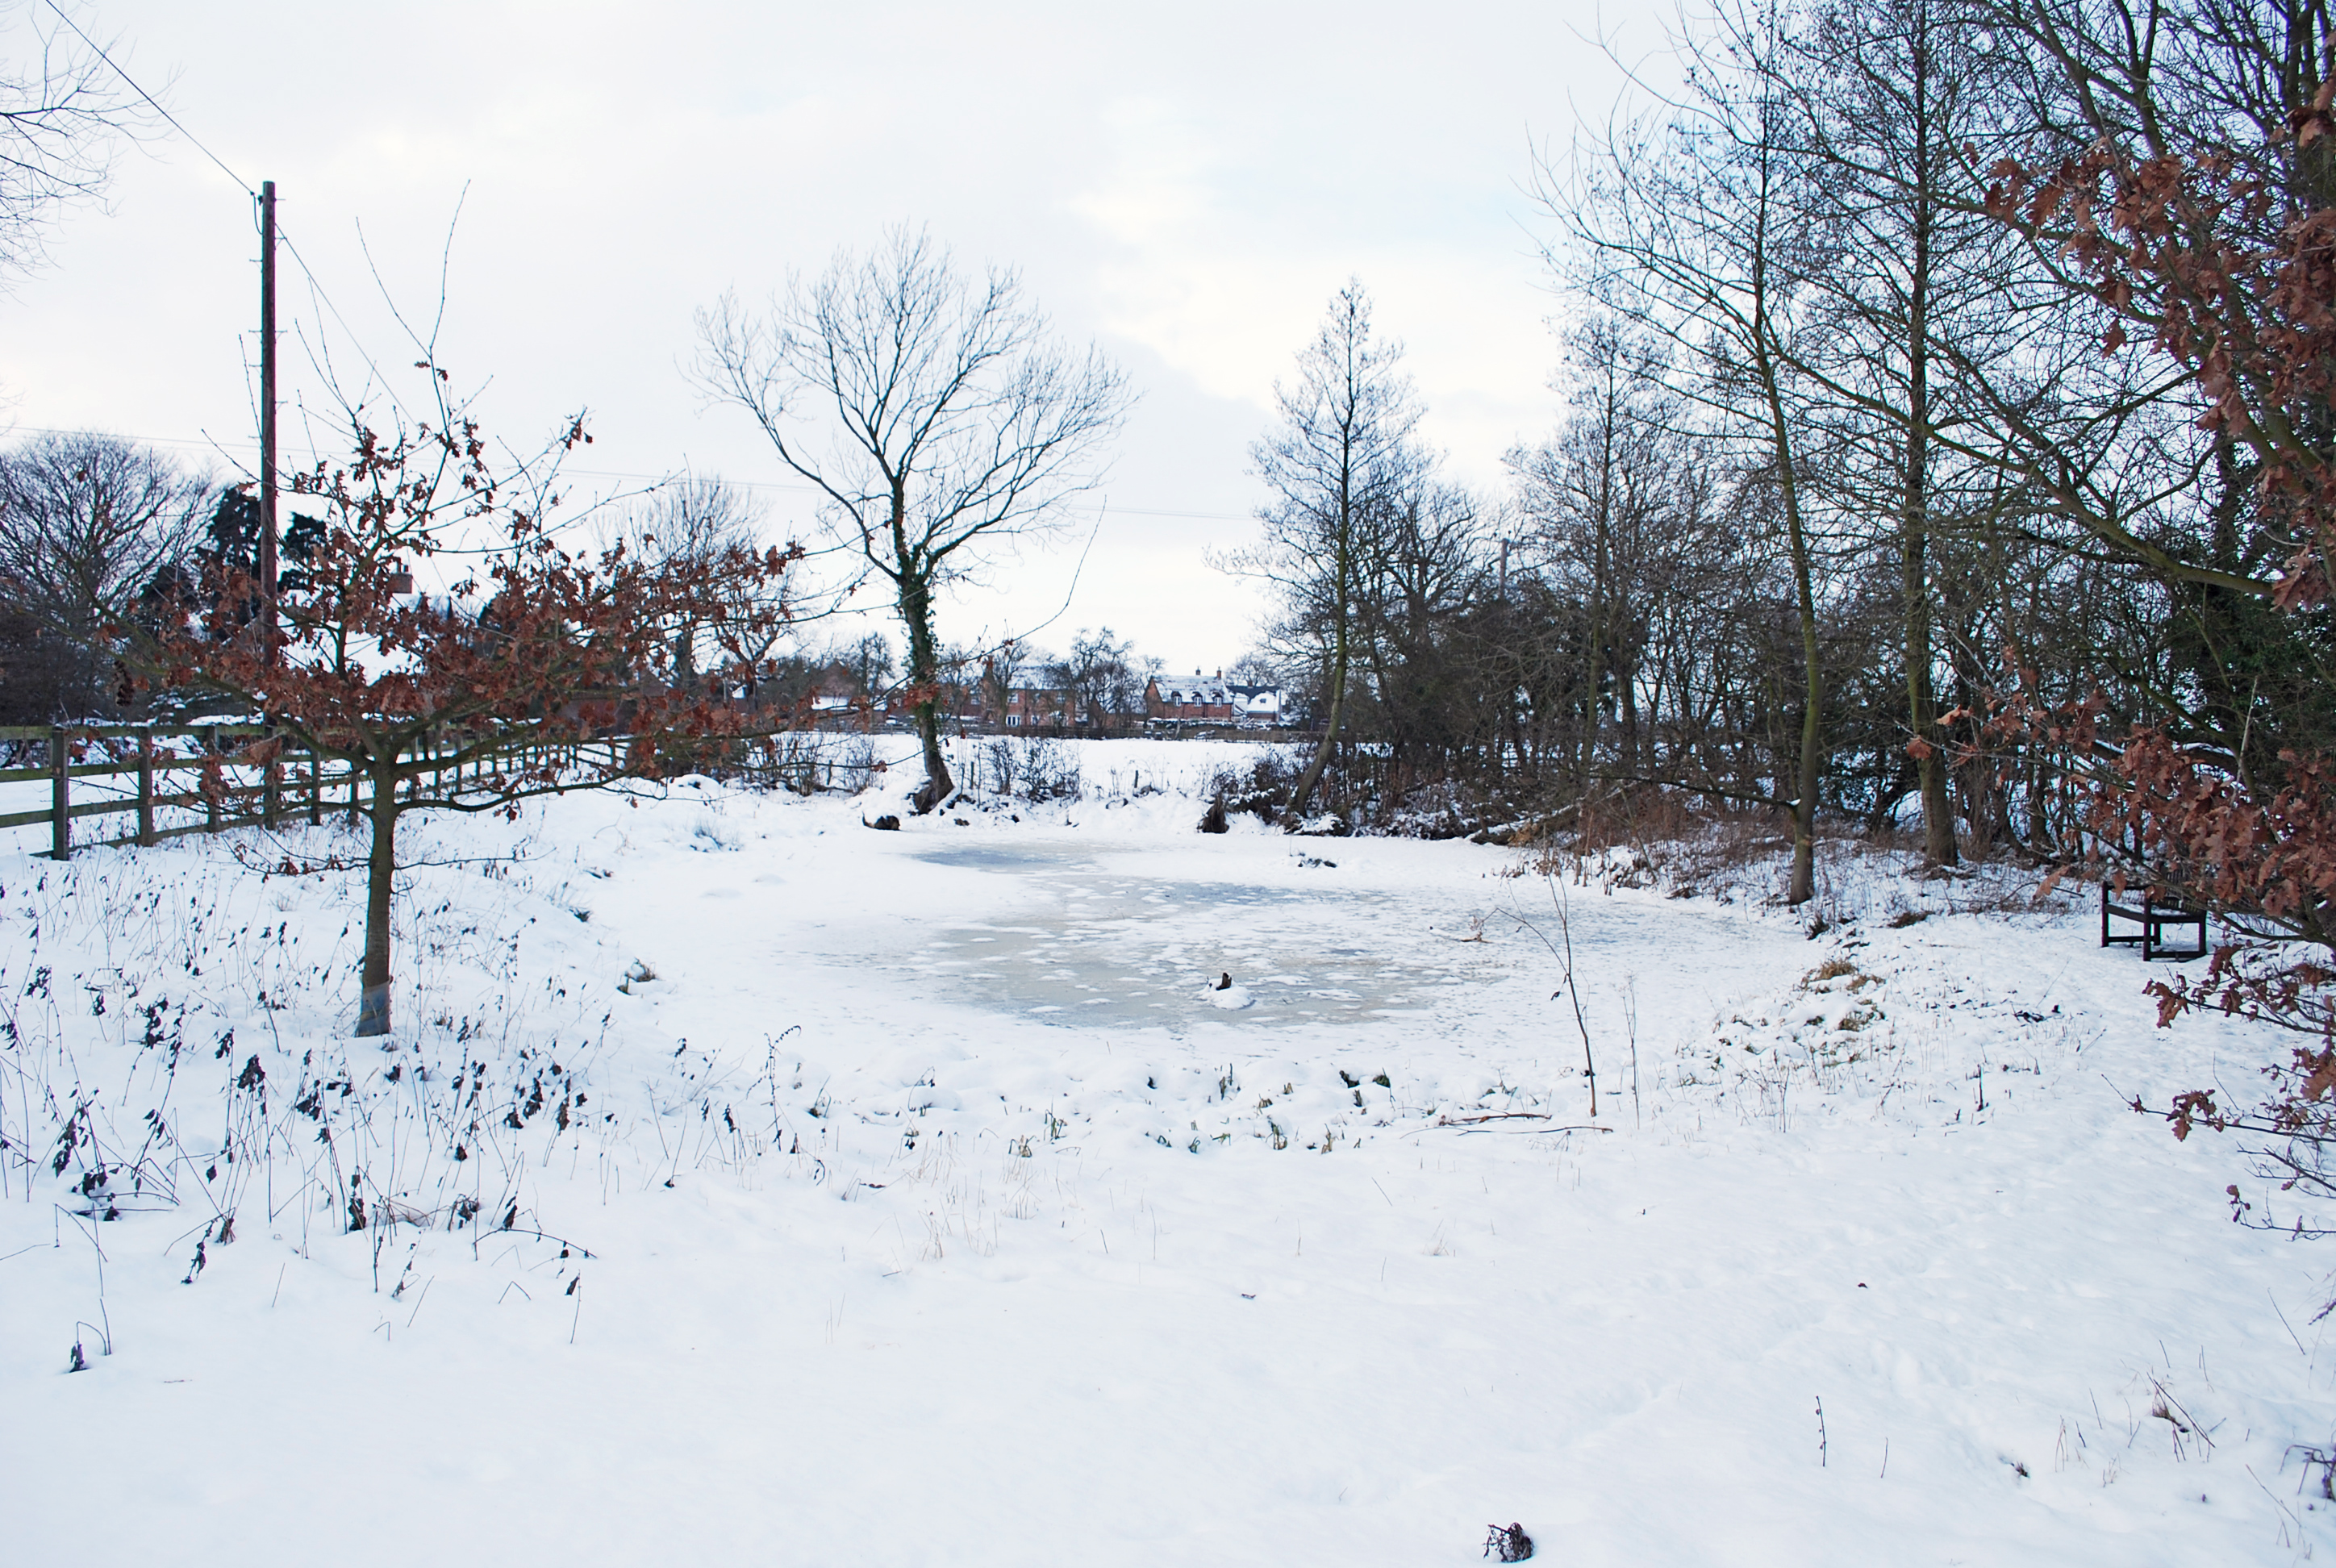 Hessay Pond, January 2010